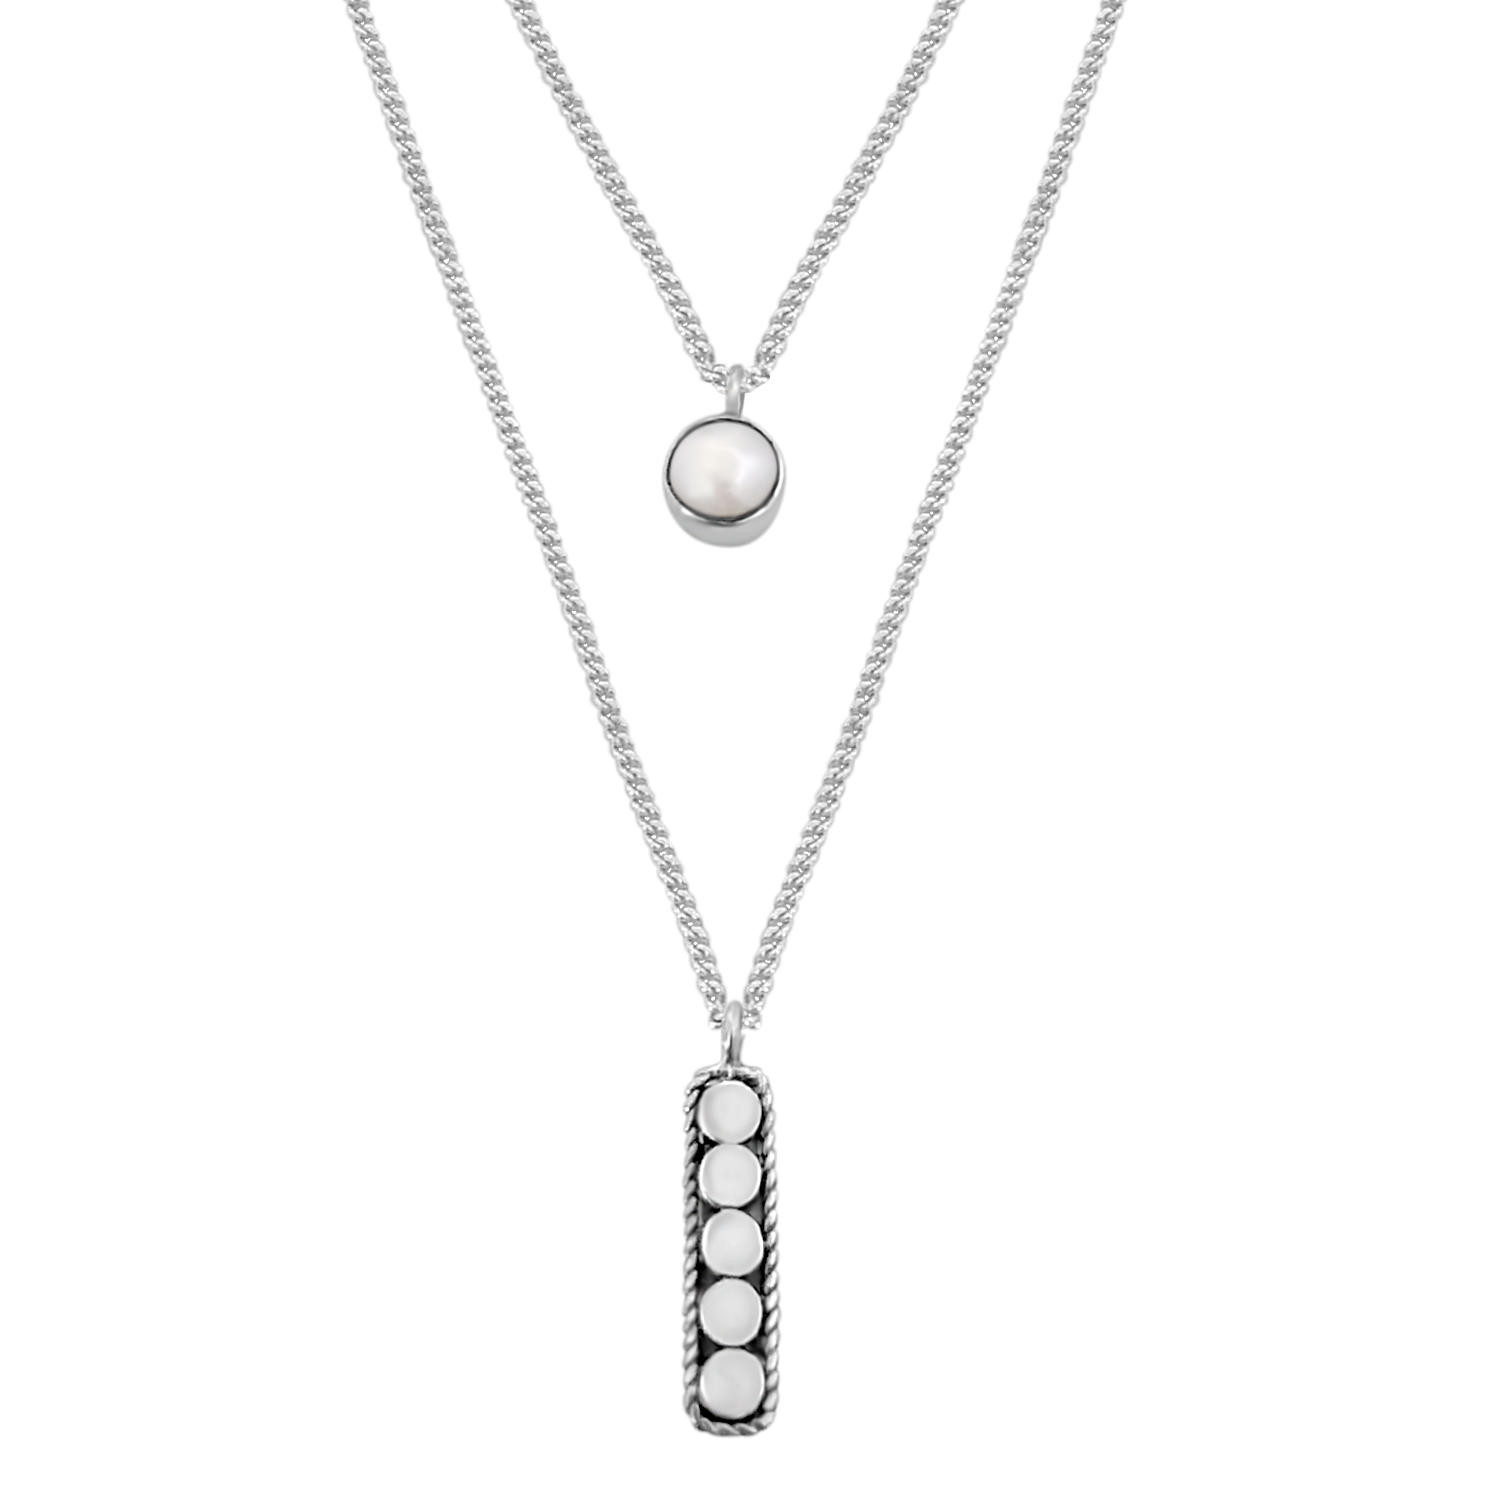 sterling silver necklace layered style handmade disc and pear classic kemmi jewelry